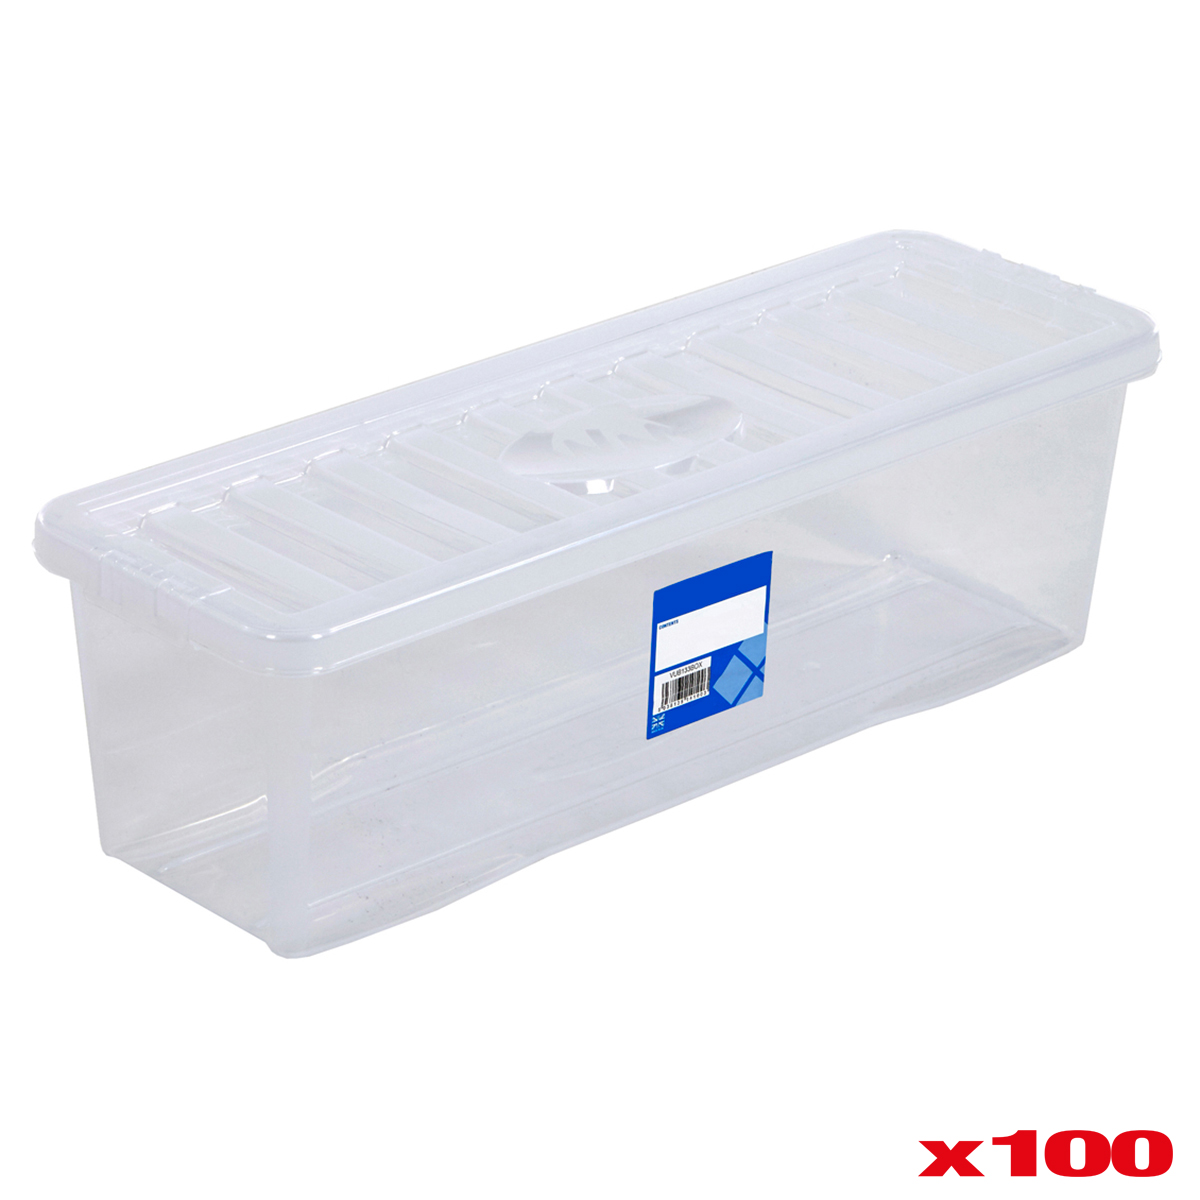 Plastic Containers With Lids Cd Plastic Storage Box Clear Container With Lid Home